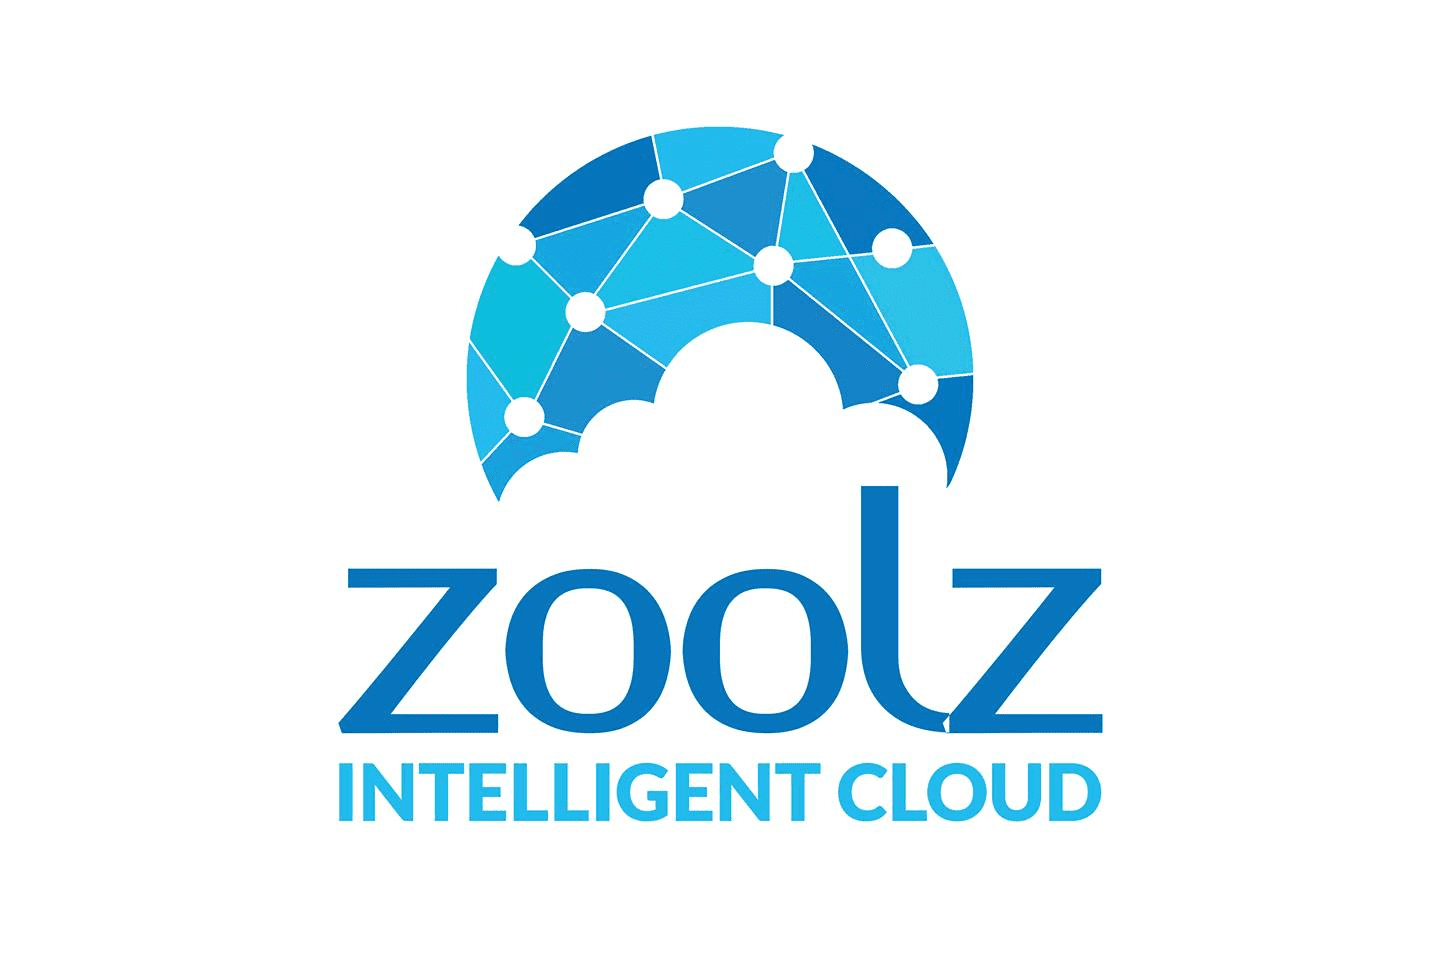 zoolz intelligent cloud logo 5841862d3df78c0230780e38